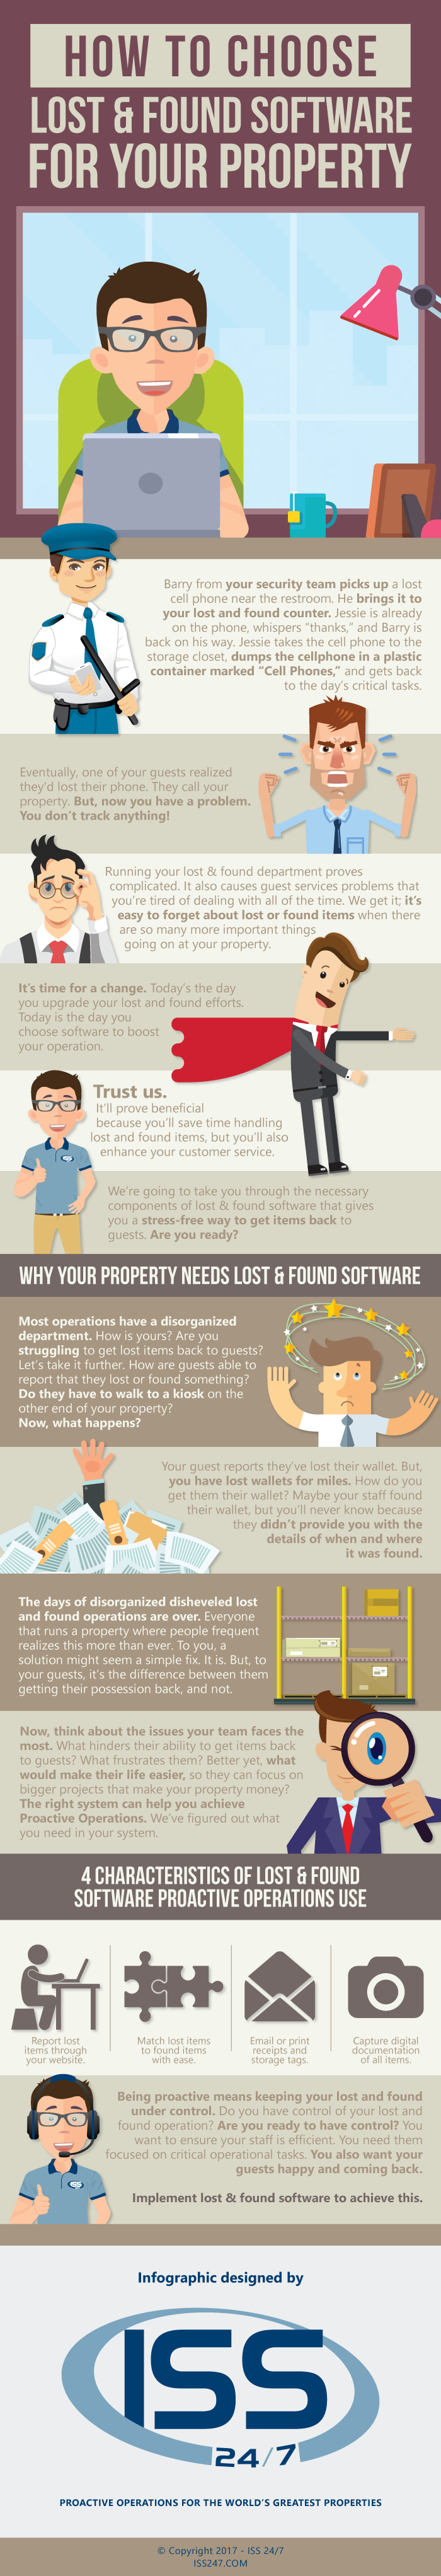 How to Choose Lost & Found Software for Your Property